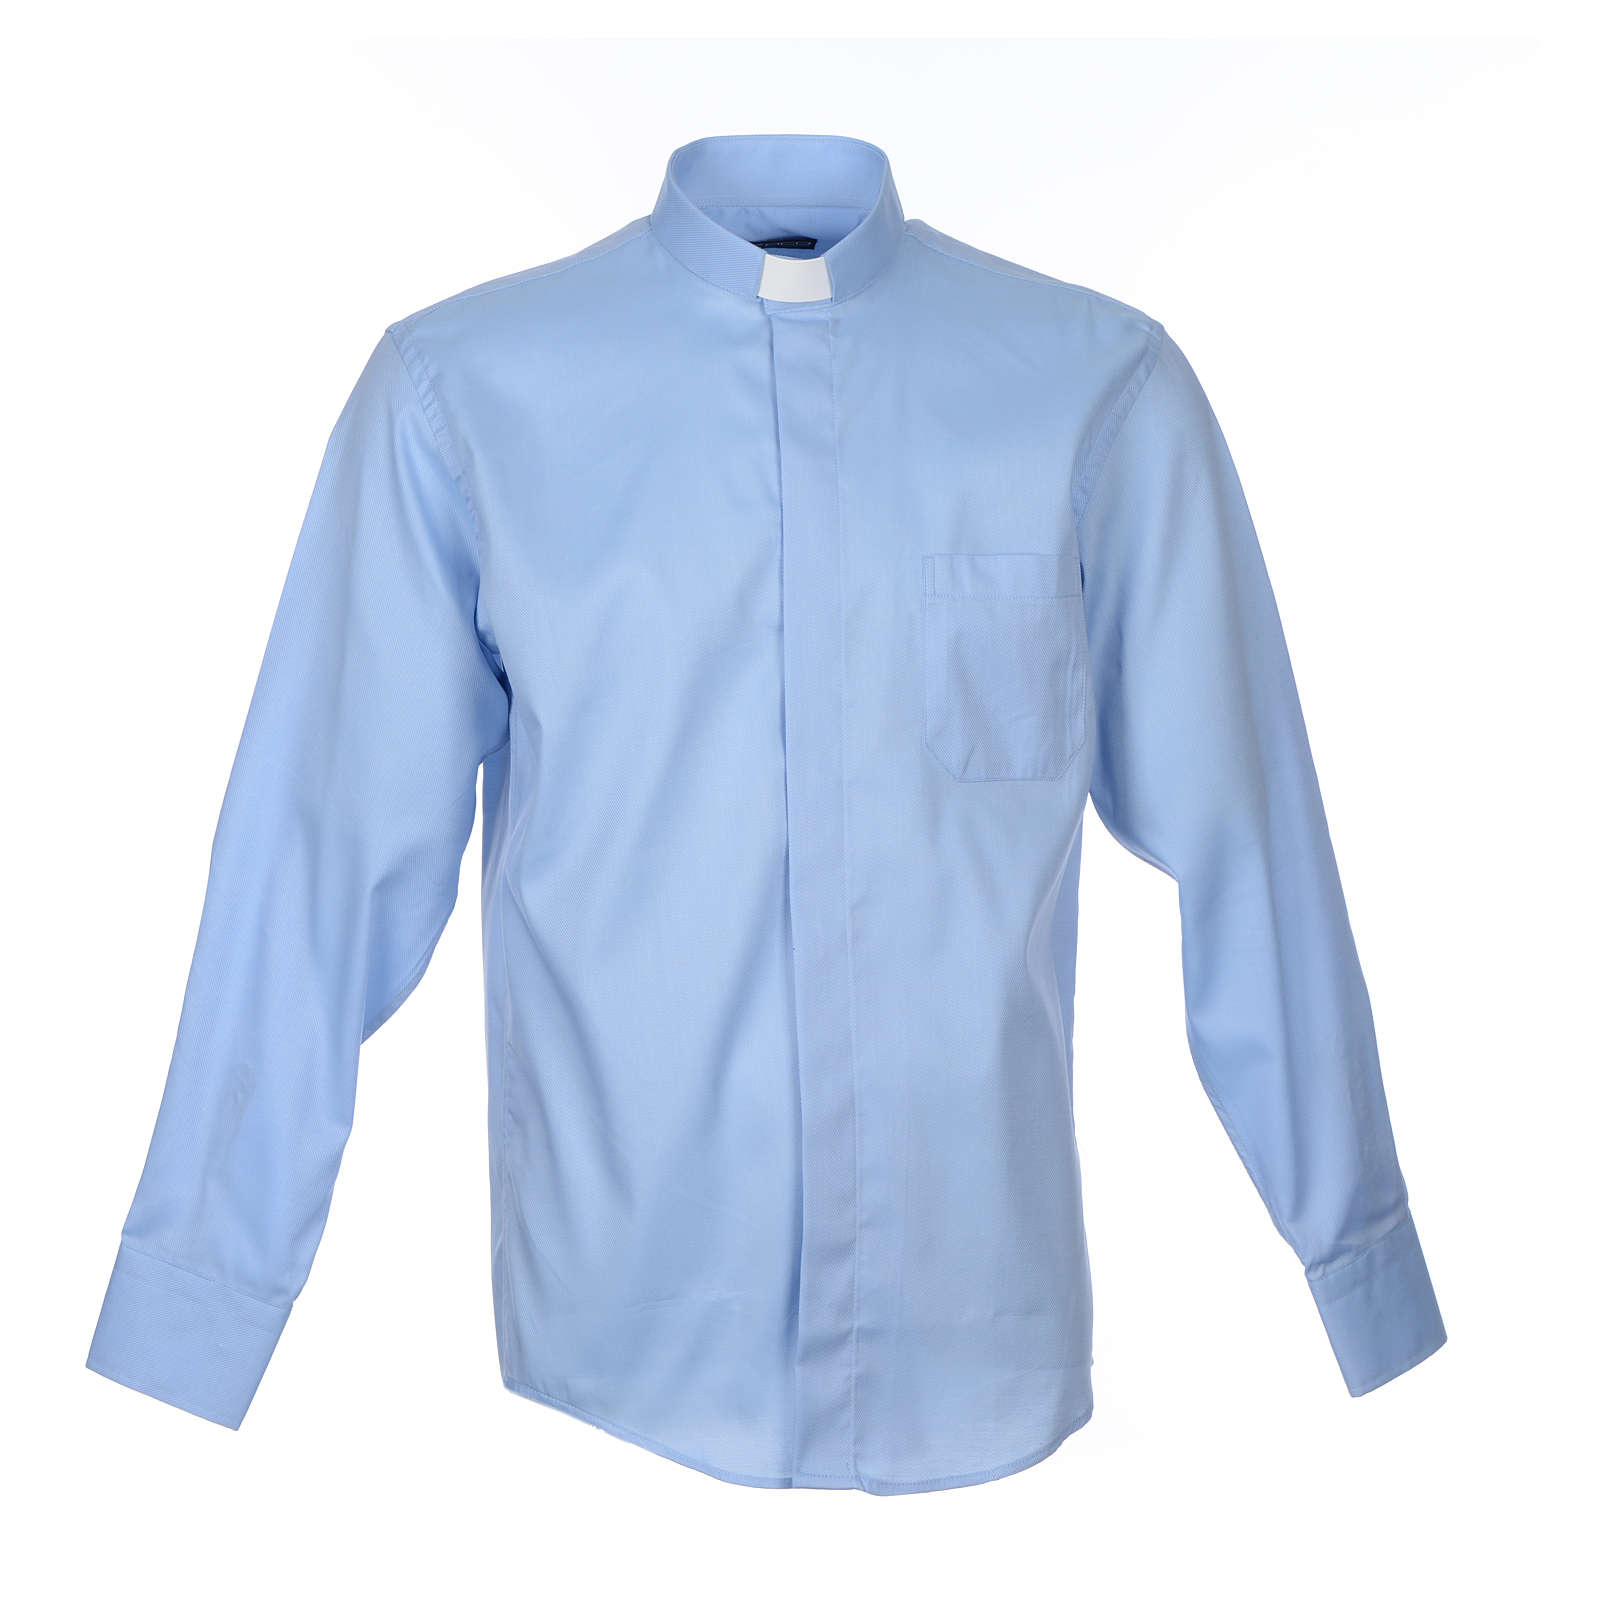 Pastor Long Sleeve Shirt in light blue, easy-iron mixed cotton 4